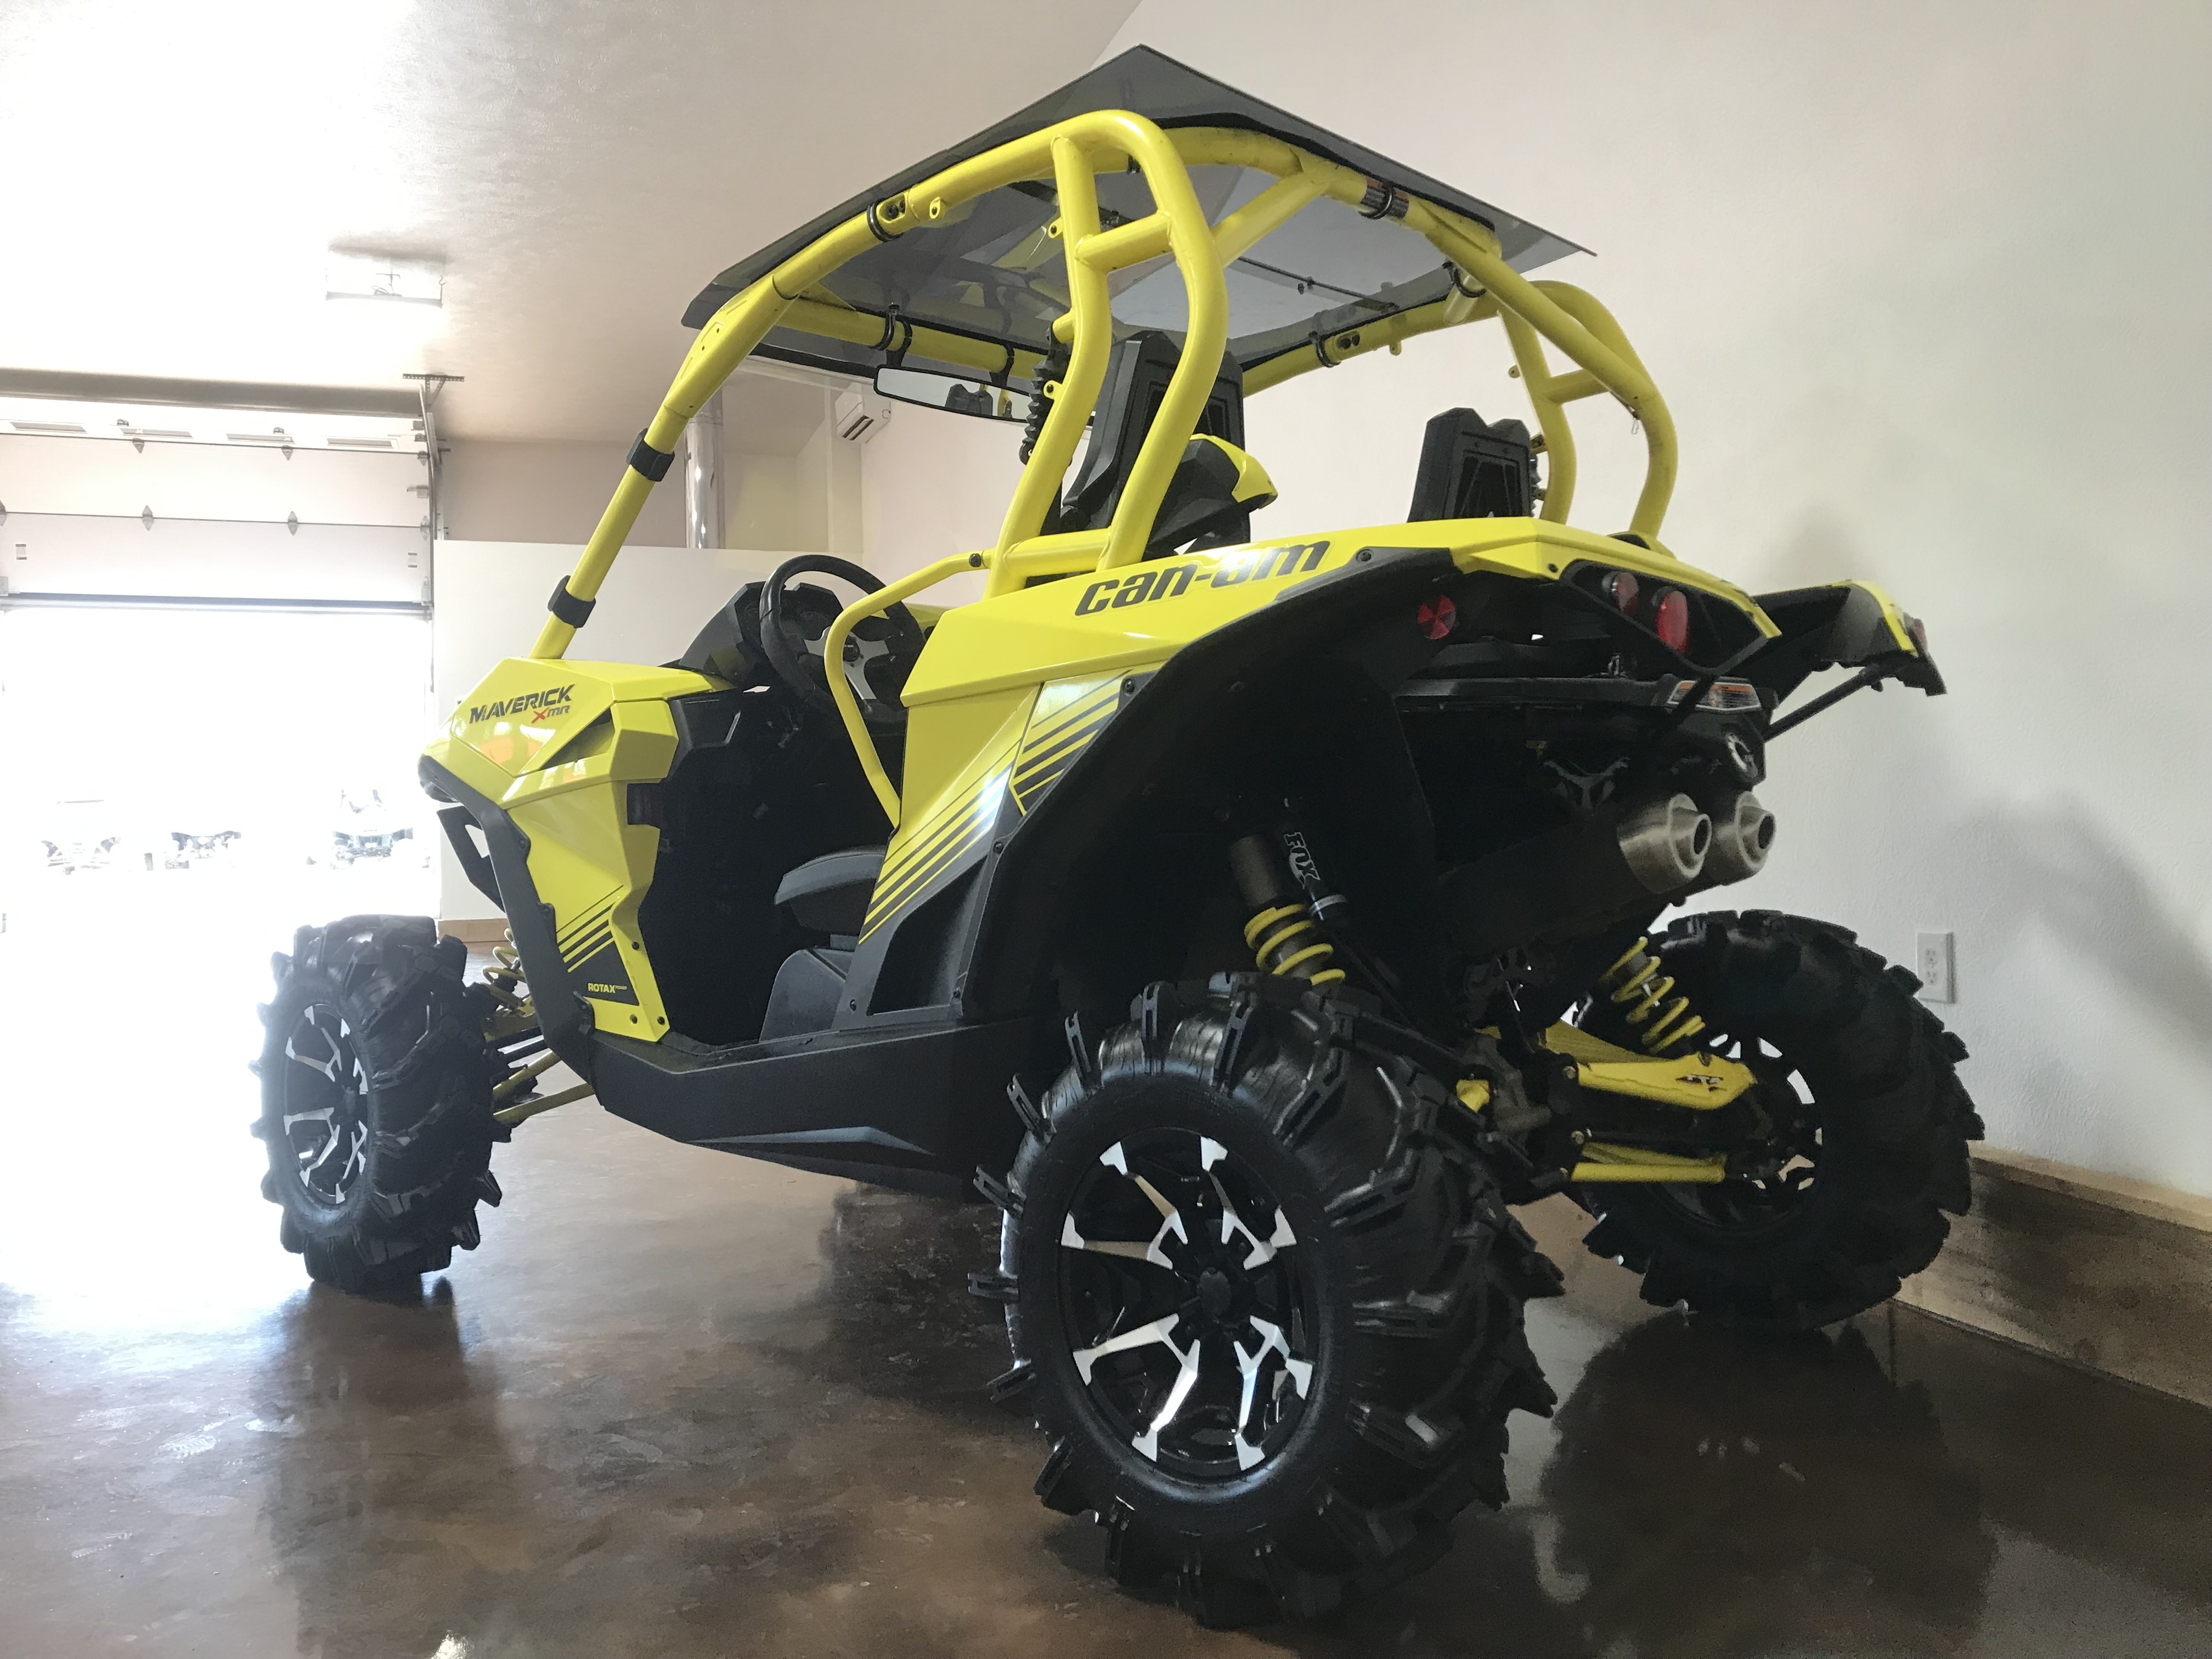 2018 Can-Am Maverick 1000R X MR - ONLY 470 Miles!